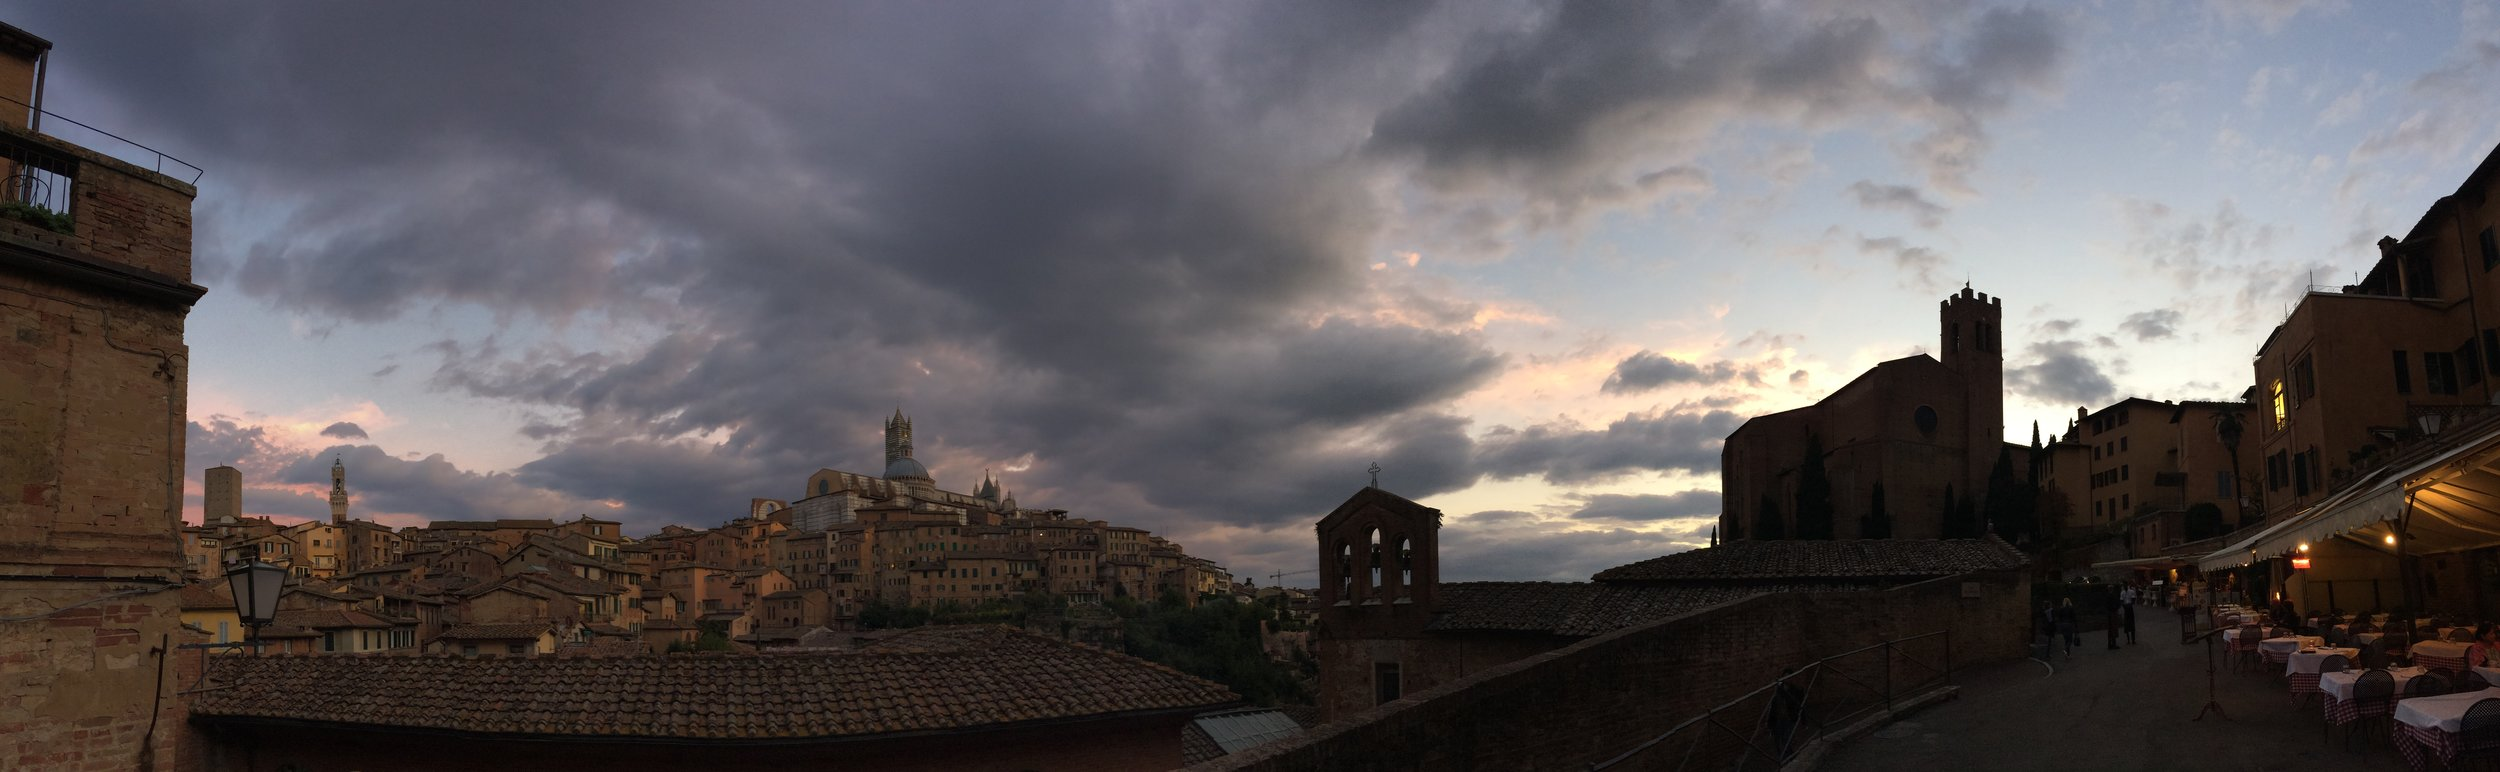 Siena at dusk.. it's hard not to love Italy! Photo by Paul Hart - October 2018